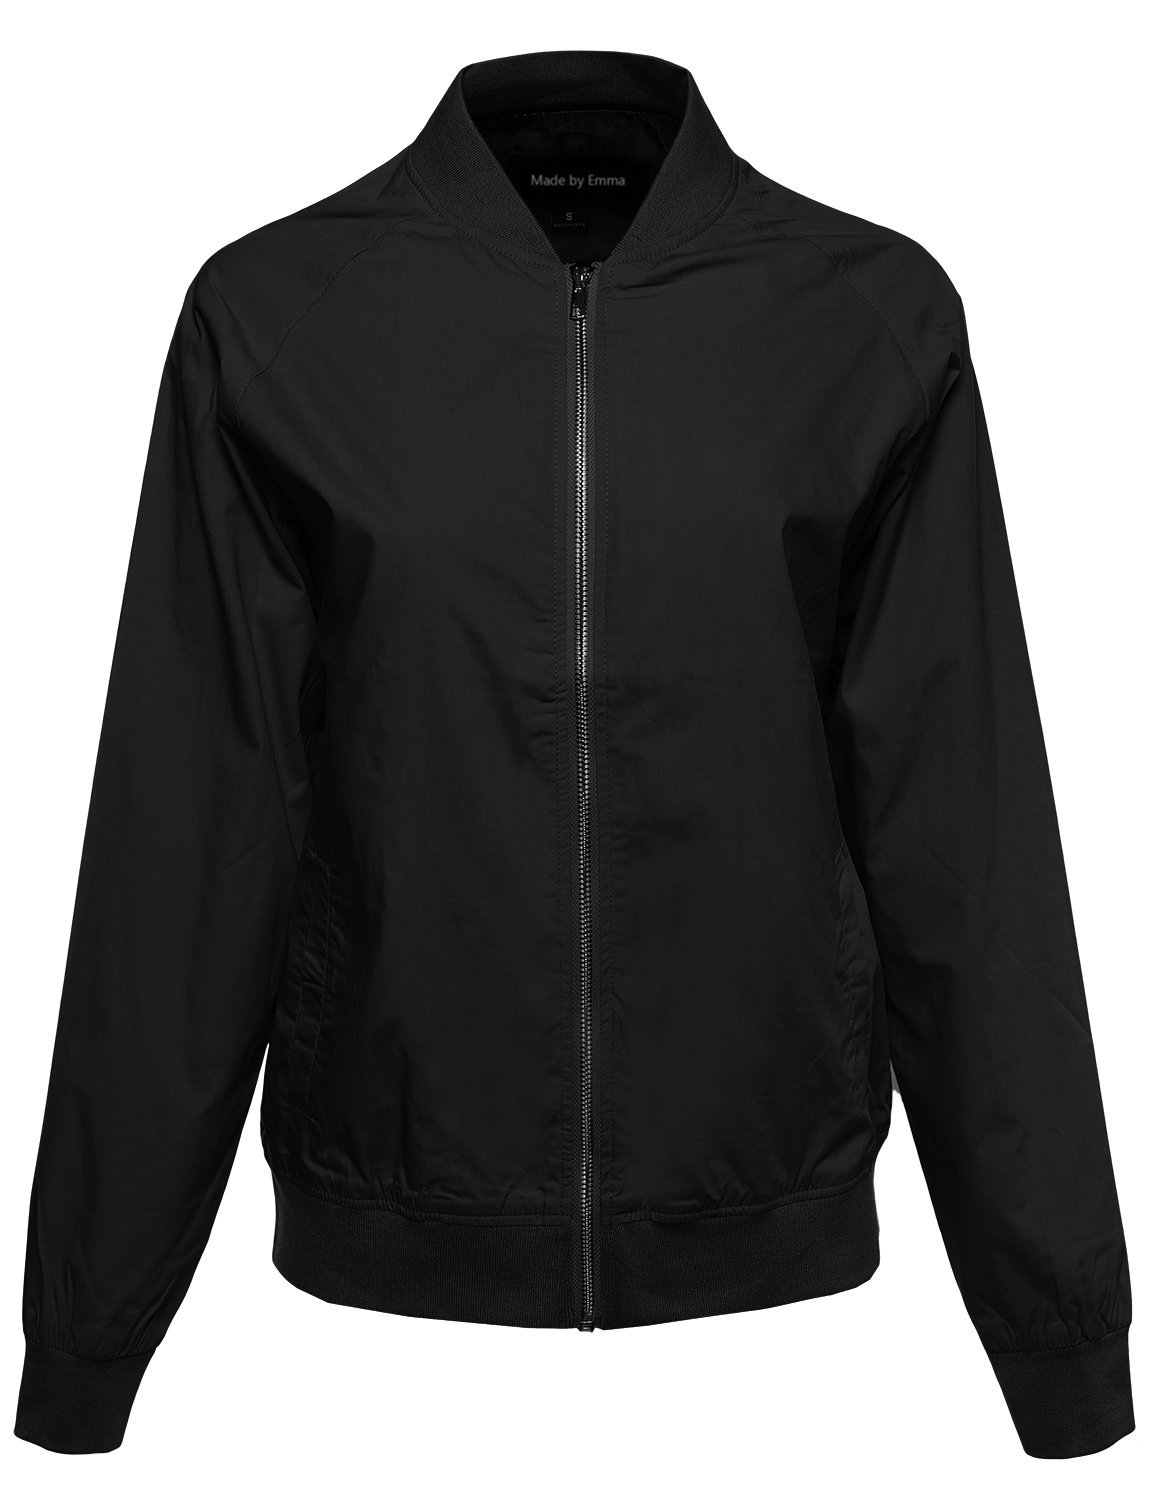 Made by Emma Classic Basic Style Zip Up Bomber Jacket Black L Size by Made by Emma